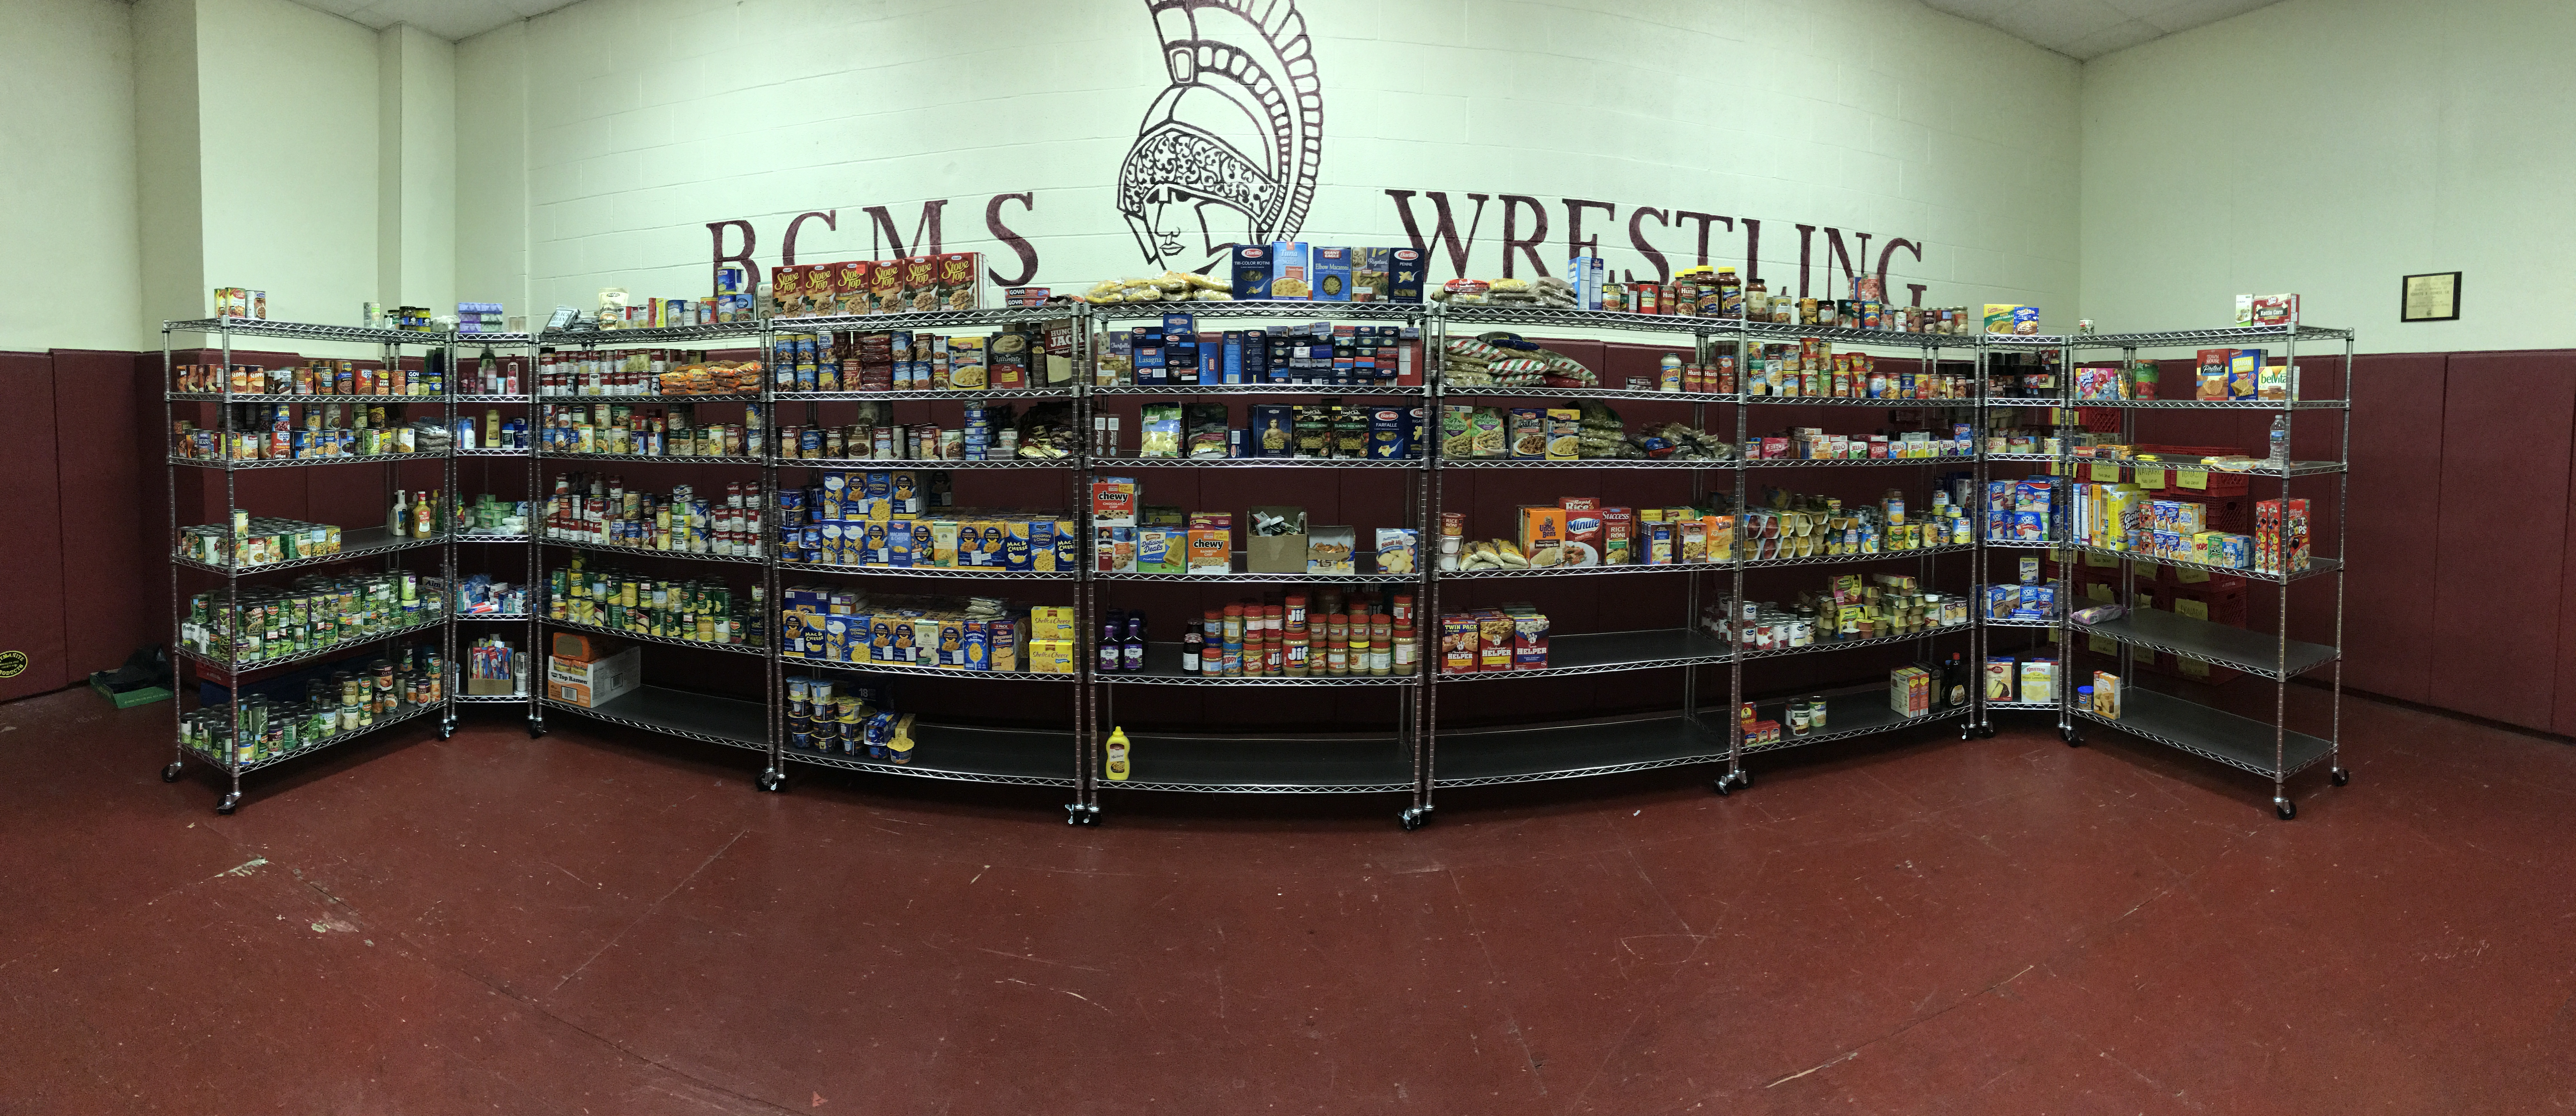 Center's Food Pantry